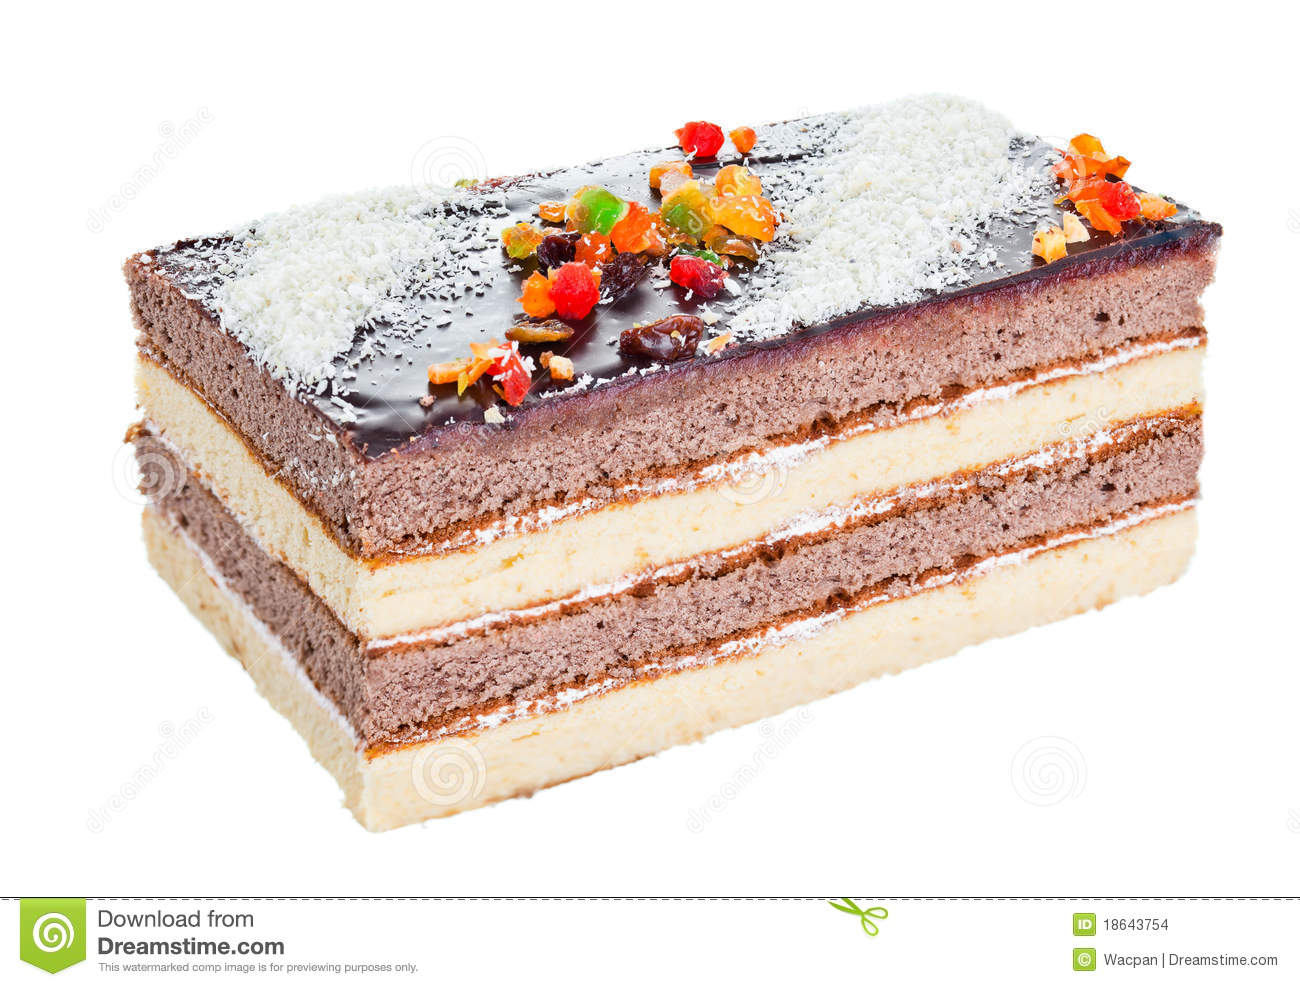 Chocolate Pastry Cake Images : Pastry Chocolate Cake Stock Images - Image: 18643754